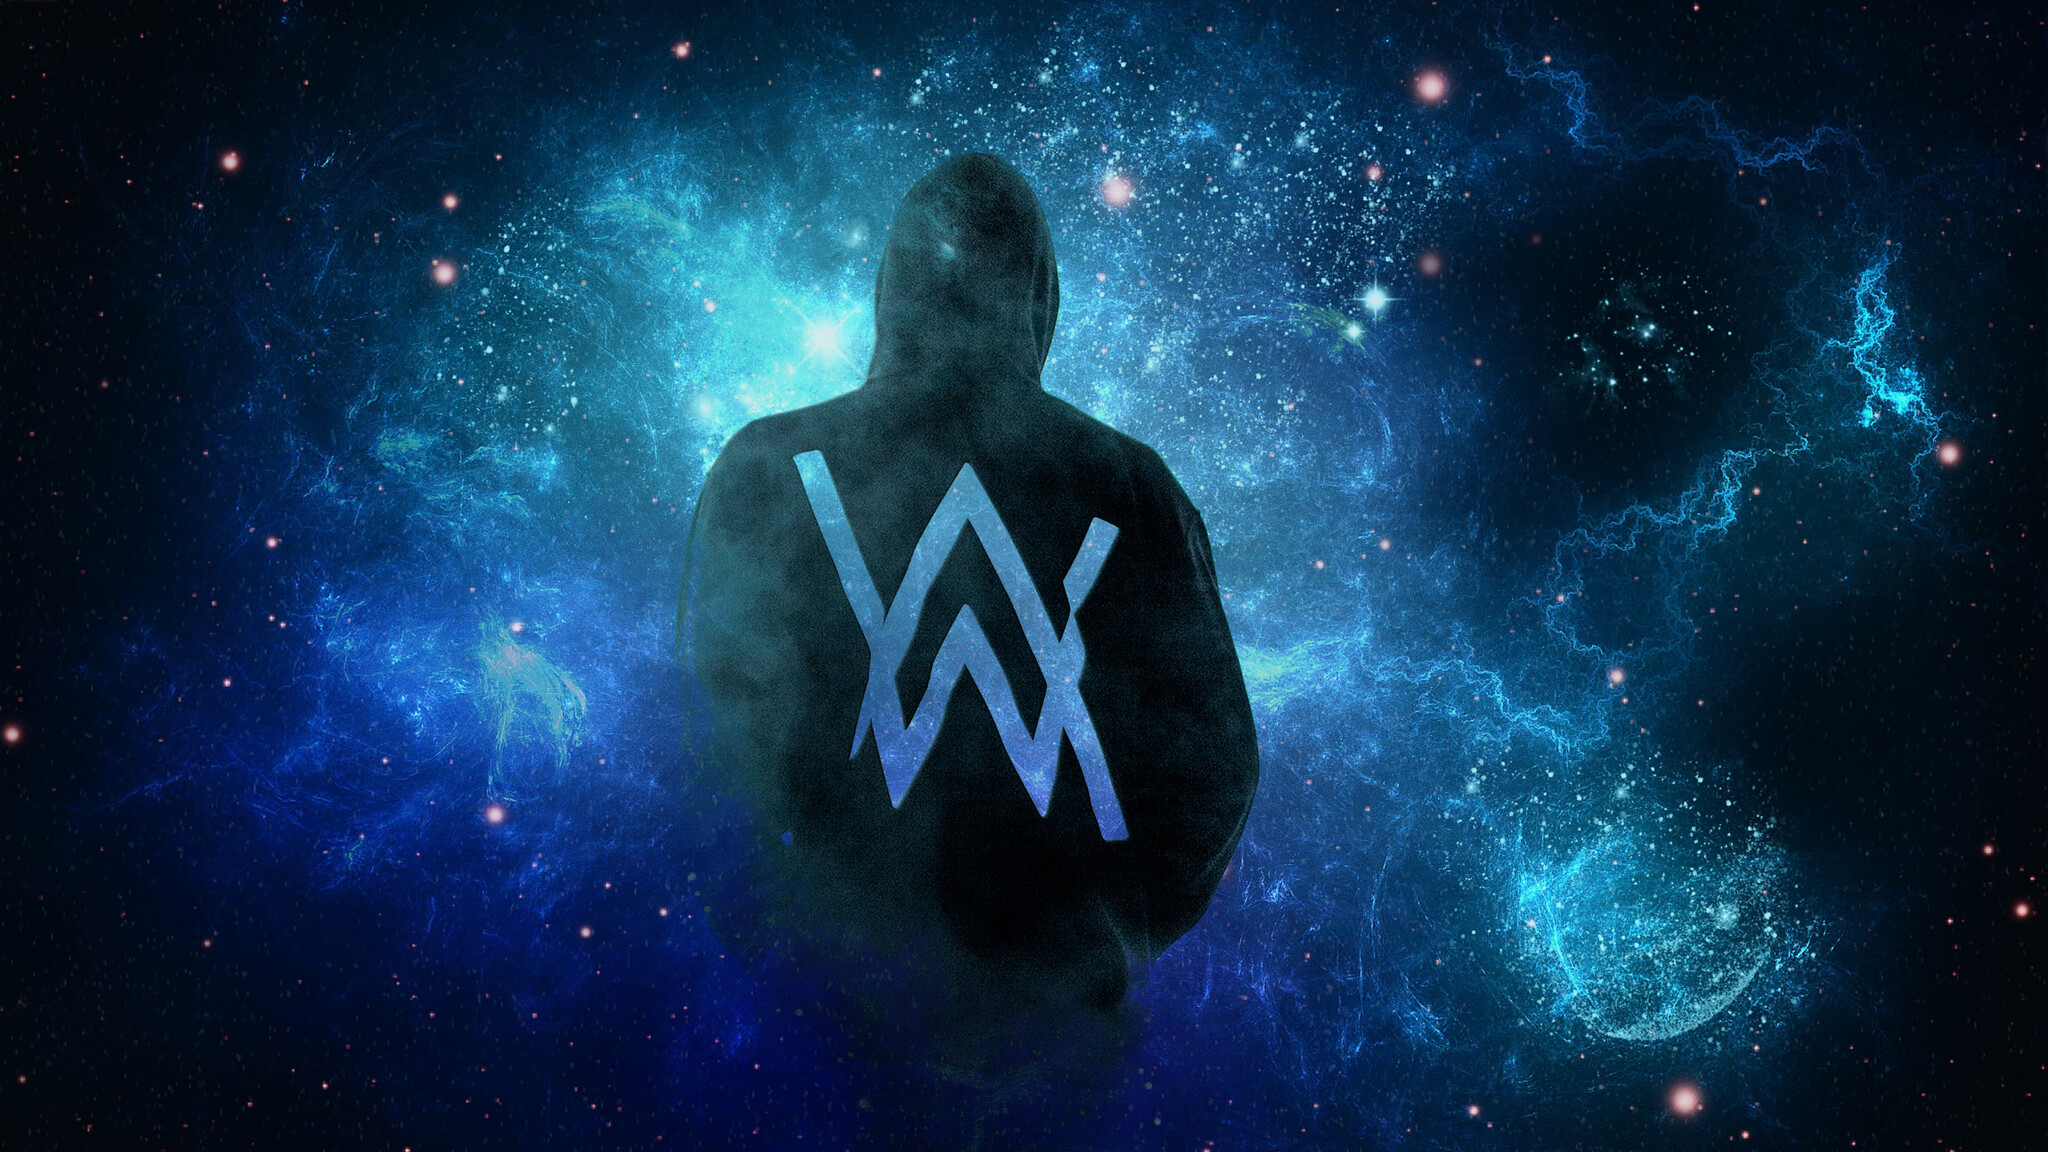 2048x1152 Alan Walker 2048x1152 Resolution HD 4k Wallpapers